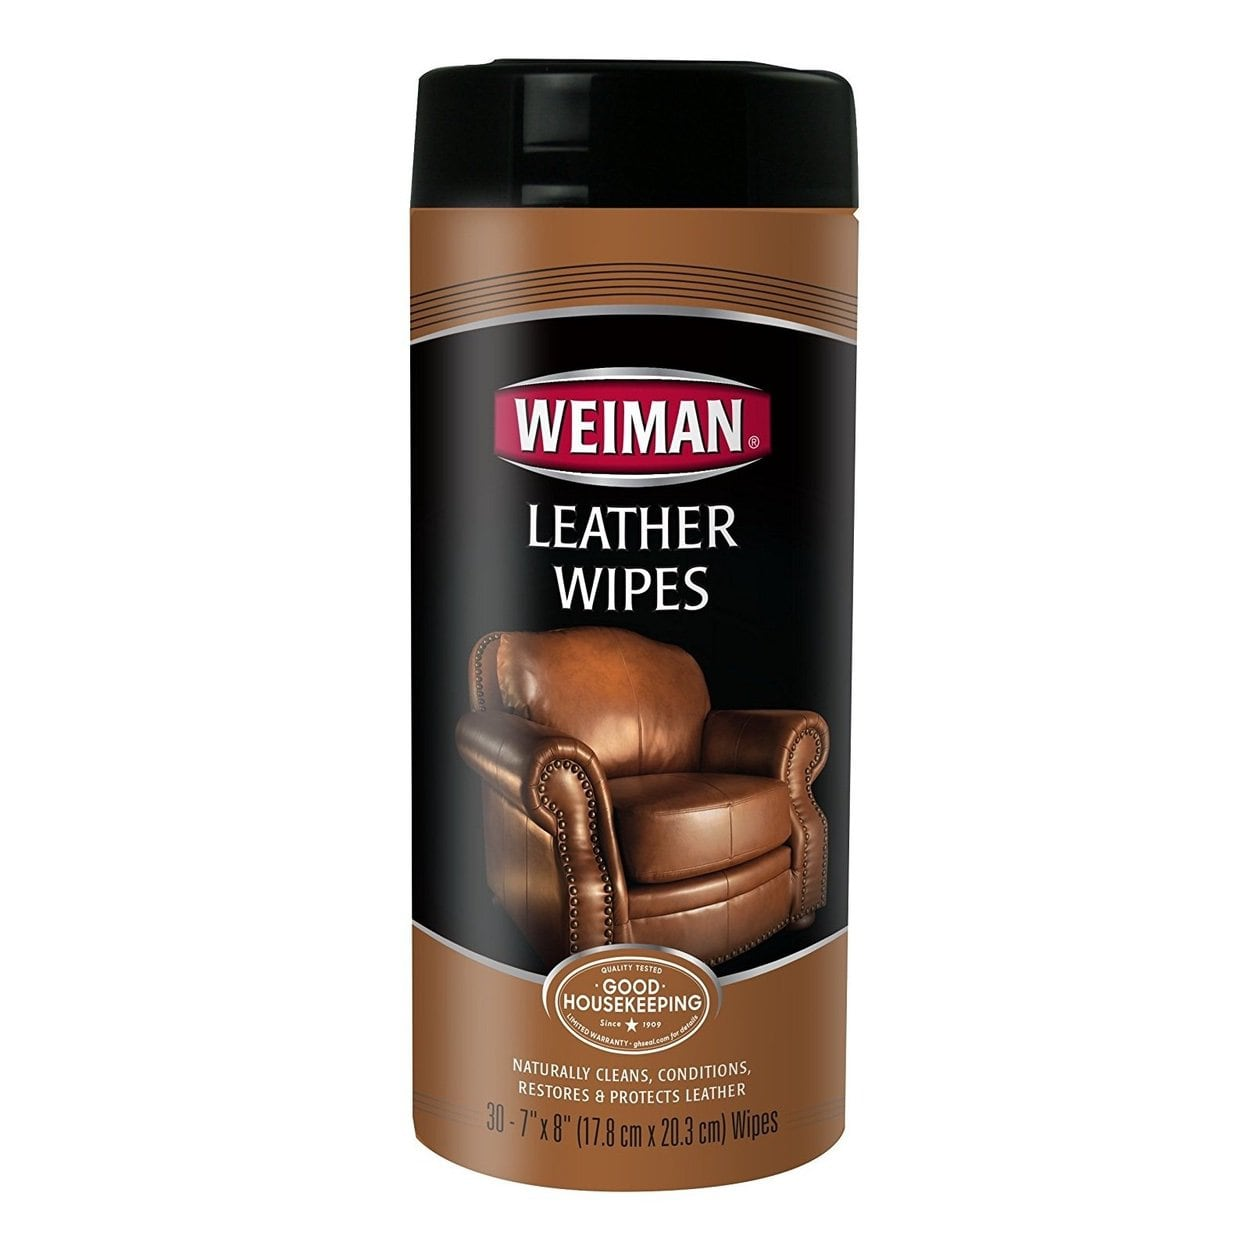 Weiman Leather Wipes 30s